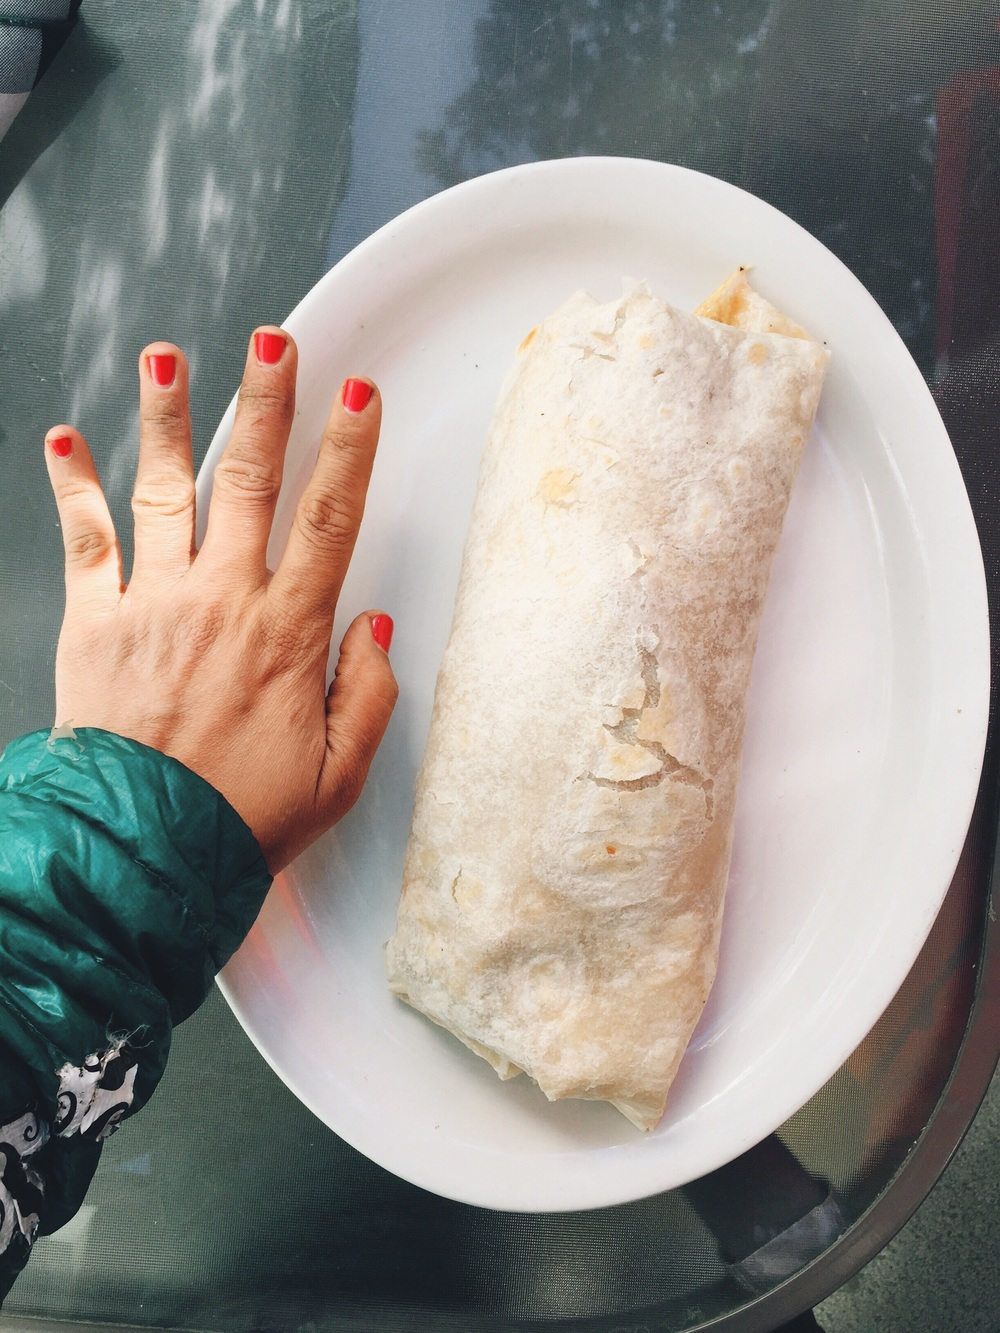 Burrito bigger than my hand.